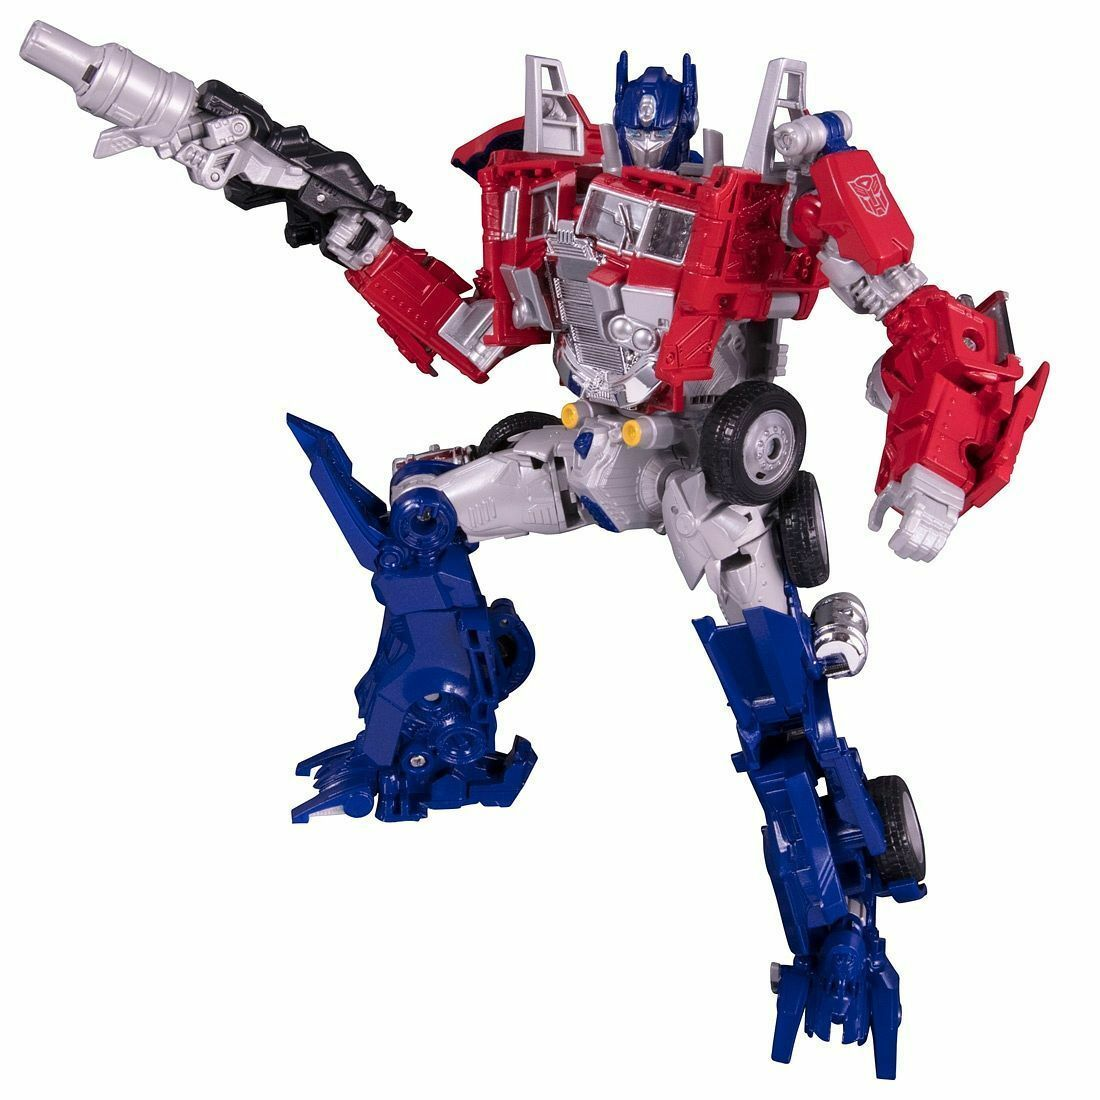 MISB in USA - Transformers Takara Exclusive Legendary Movie Optimus Prime